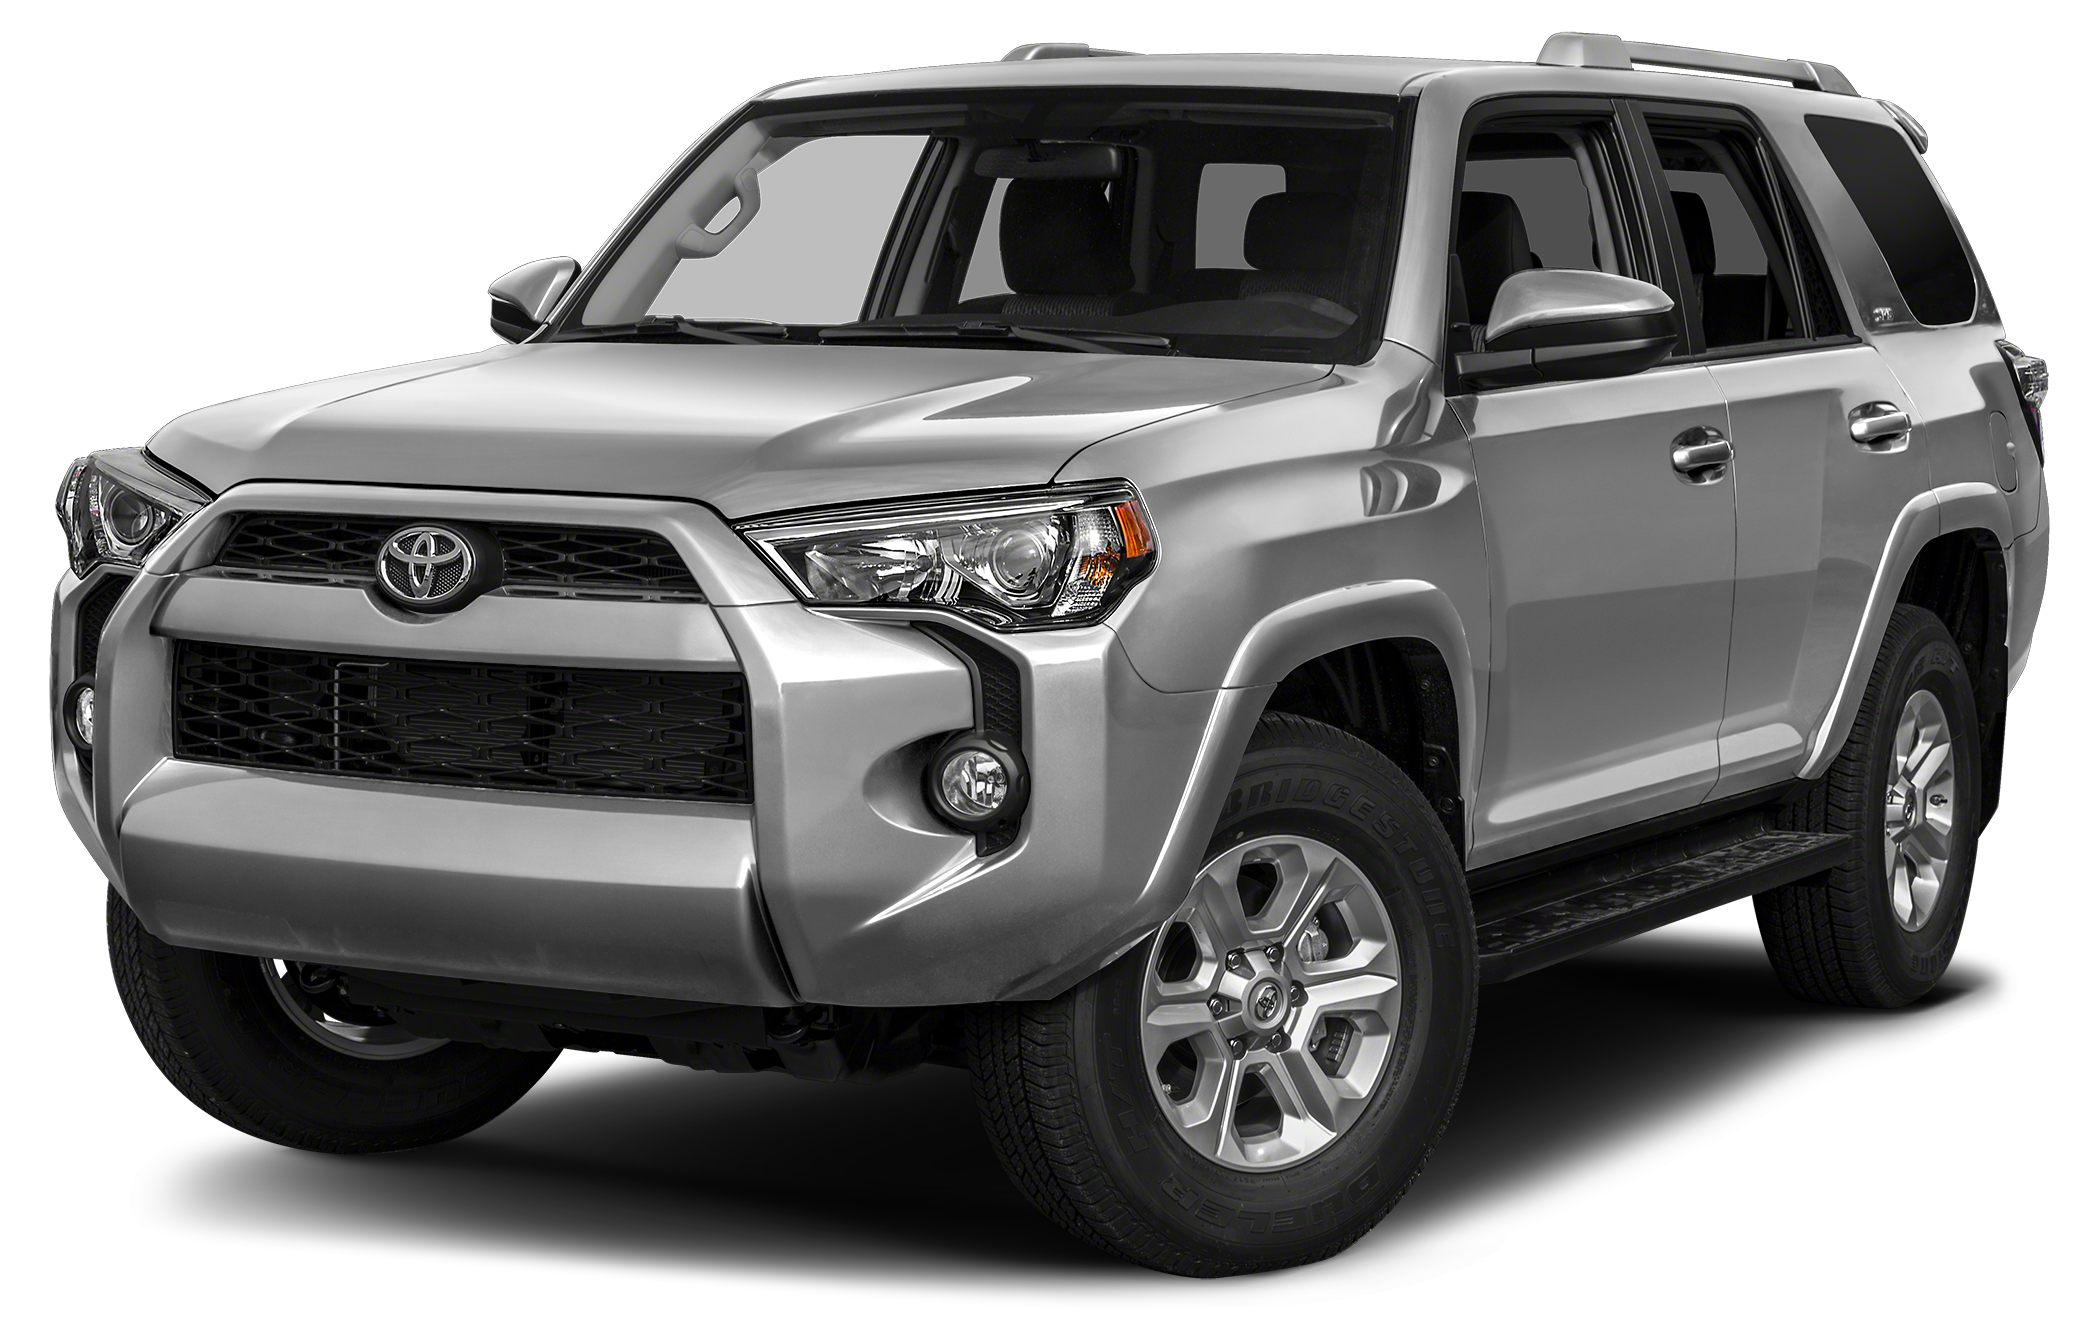 2015 Toyota 4Runner SR5 Premium Westboro Toyota is proud to present HASSLE FREE BUYING EXPERIENCE